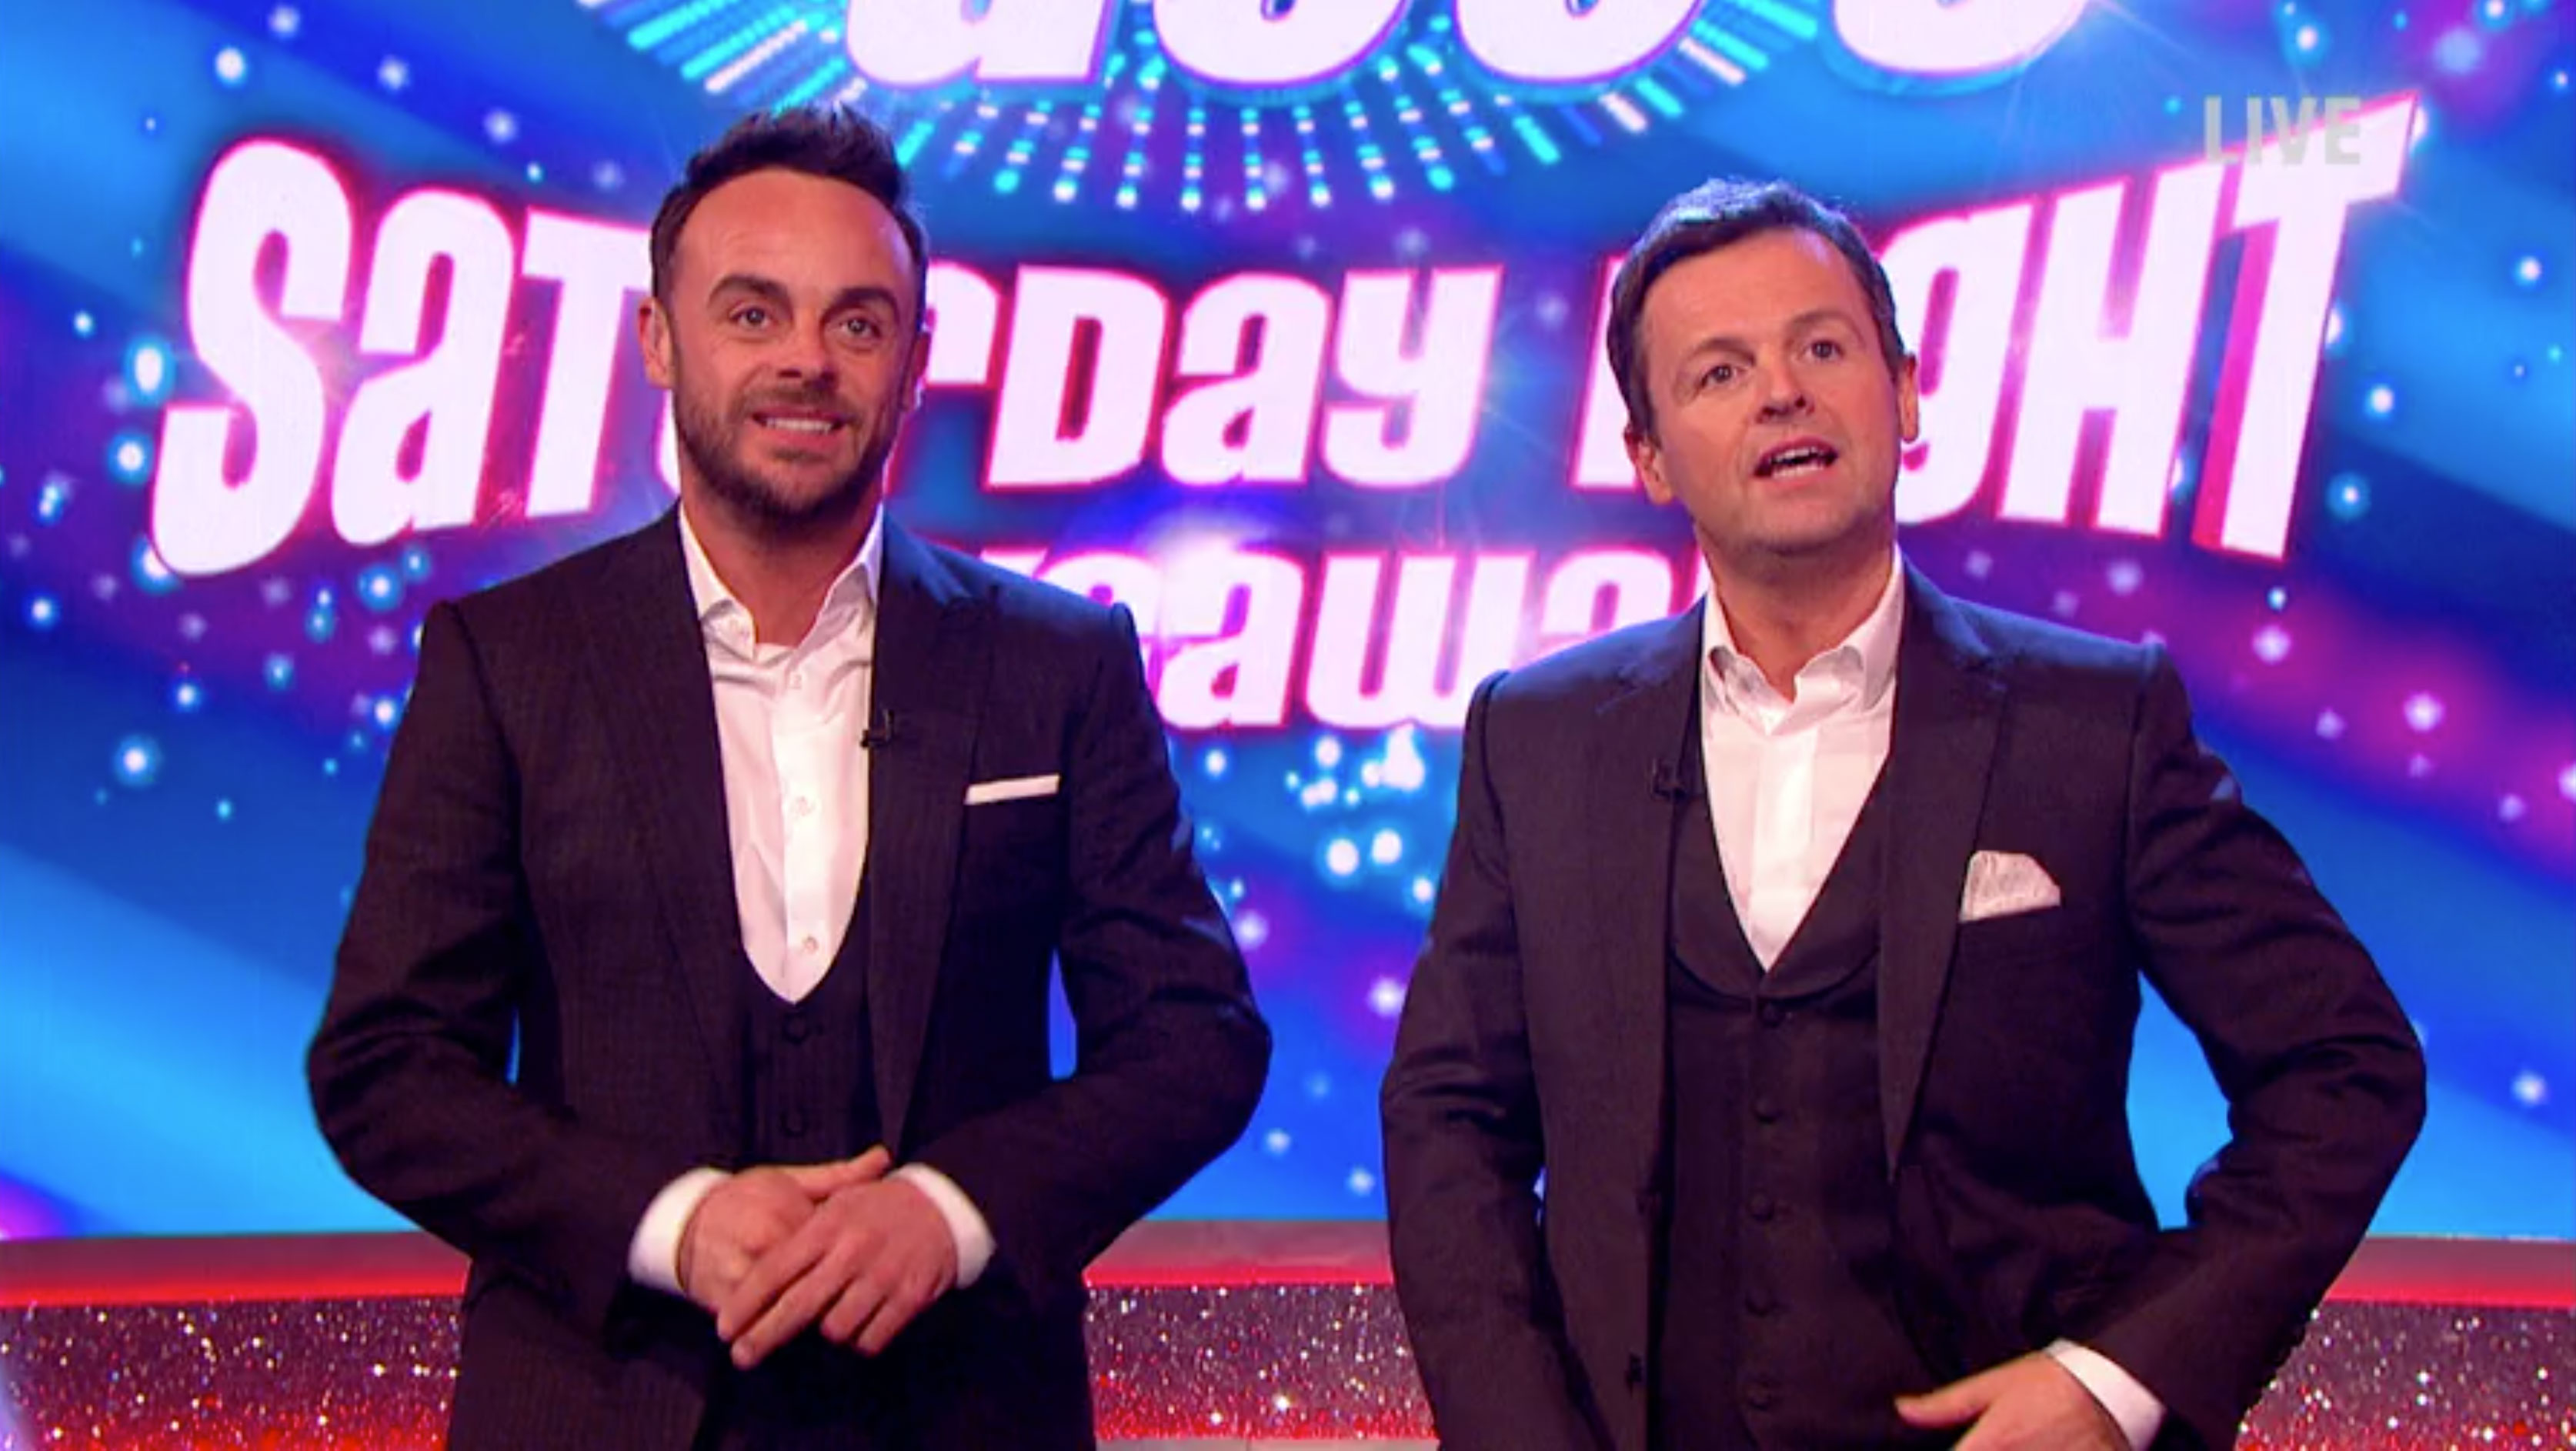 Fans express concern for newly single Ant, after his appearance on Saturday Night Takeaway